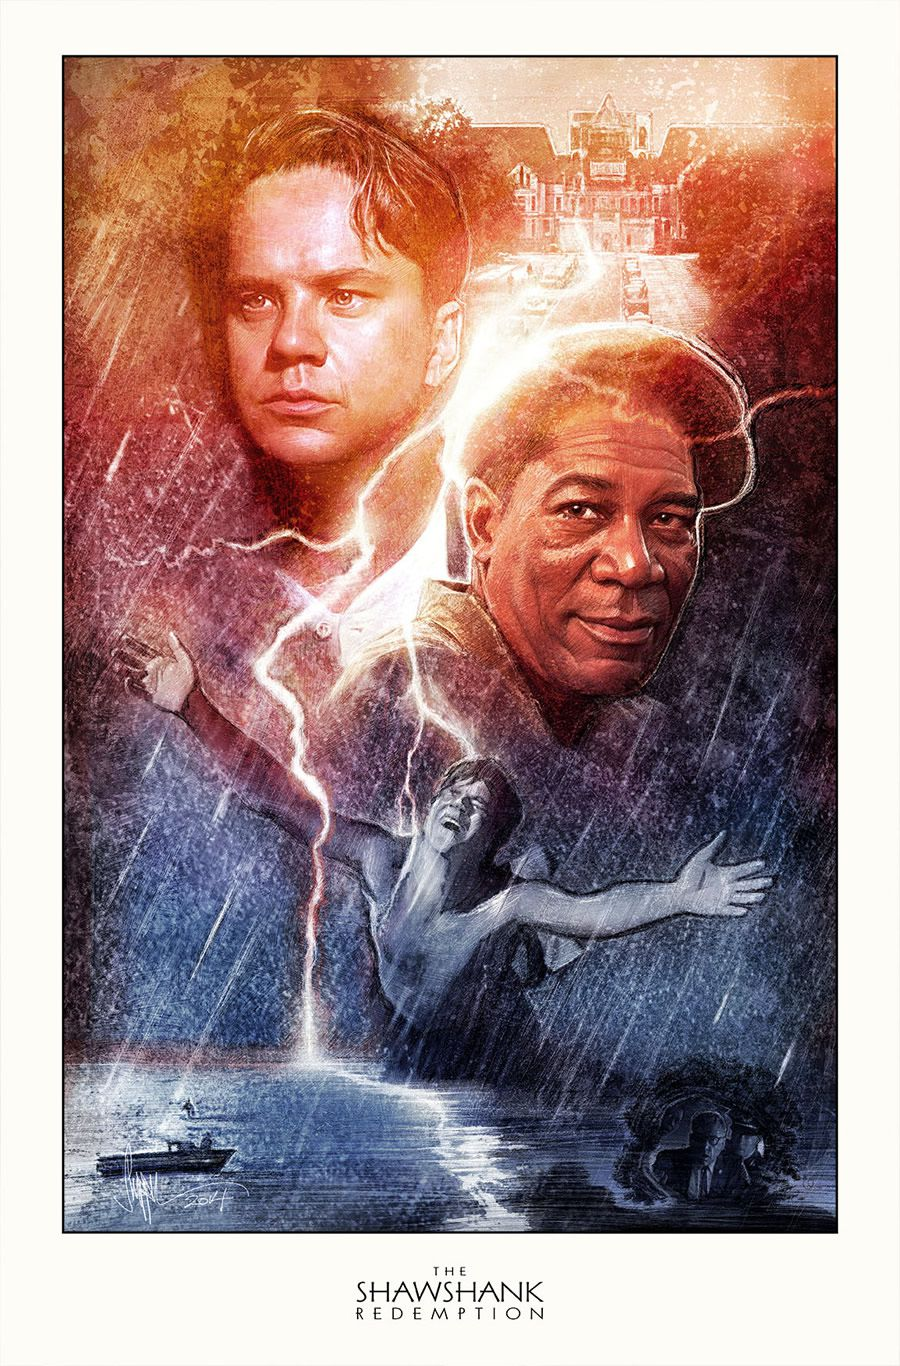 Paul shipper movie posters 7